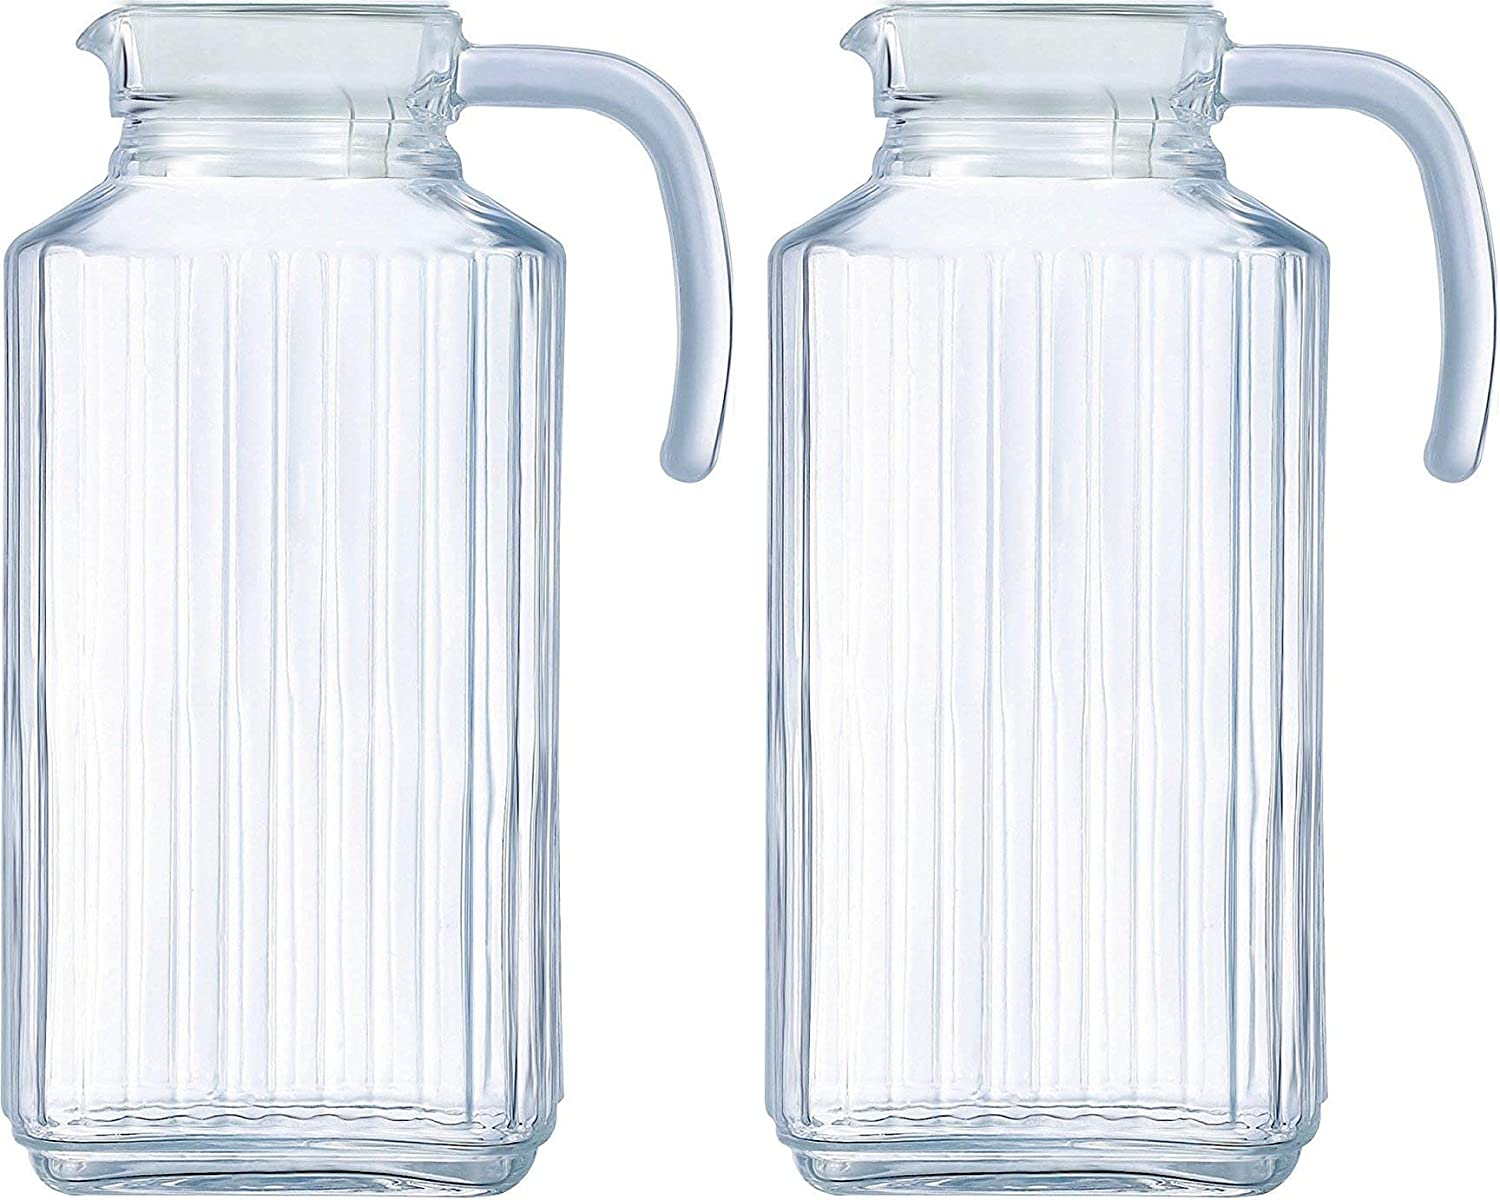 Circleware Frigo Ribbed Set of 2 Glass Pitchers with Lid and Handle, 8 Cup Everyday Water Carafe Beverage Dispenser Drink Glassware for Beer, Wine Liquor & Drinking Gifts, 63.4 oz, 2-pc